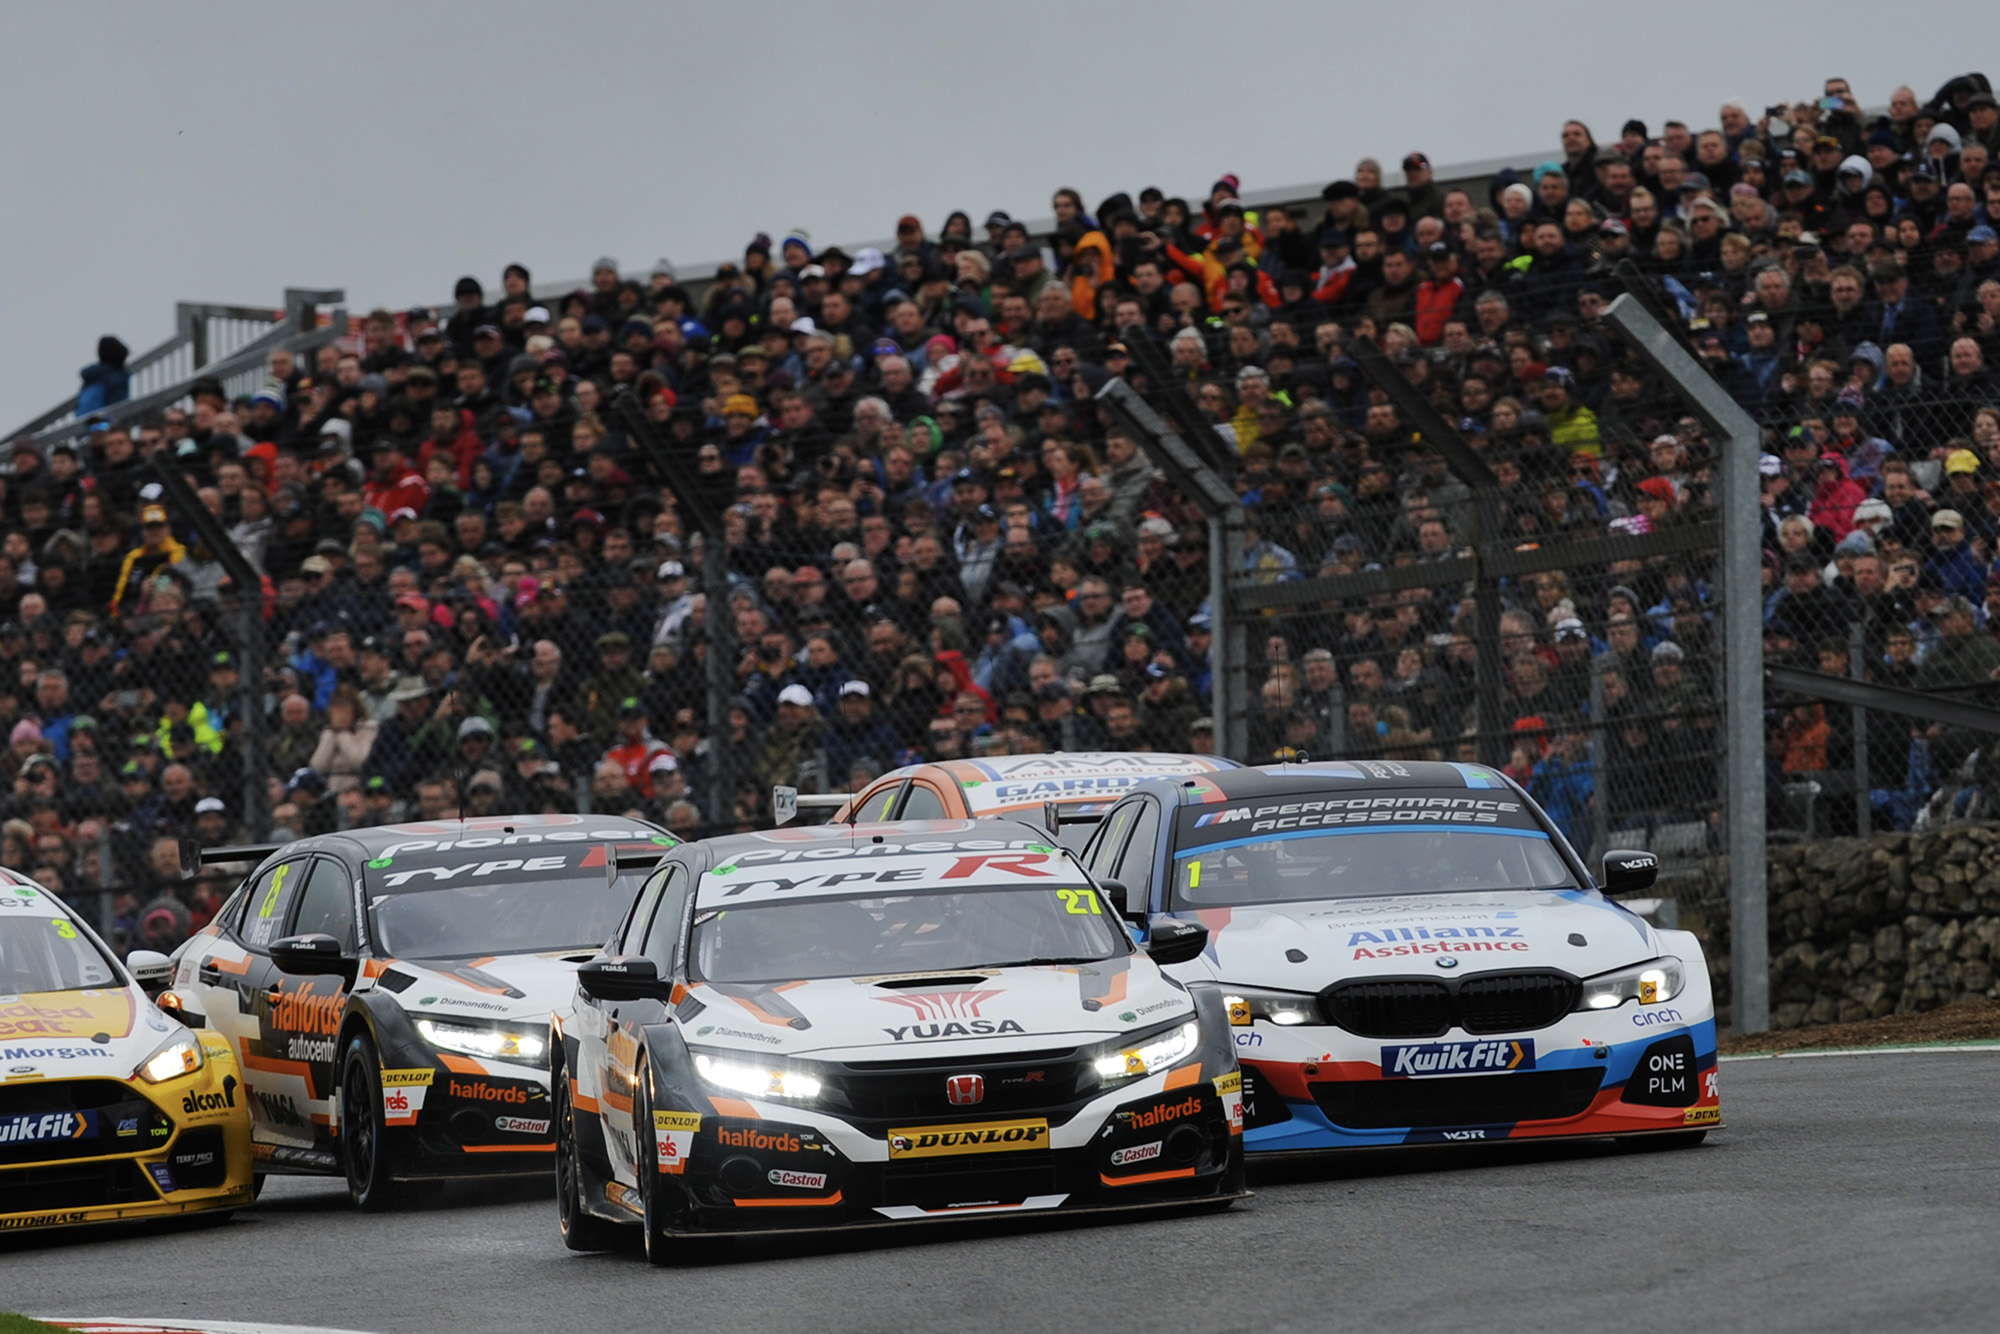 Dan Cammish takes on Colin Turkington at Brands Hatch during the 2019 BTCC championship